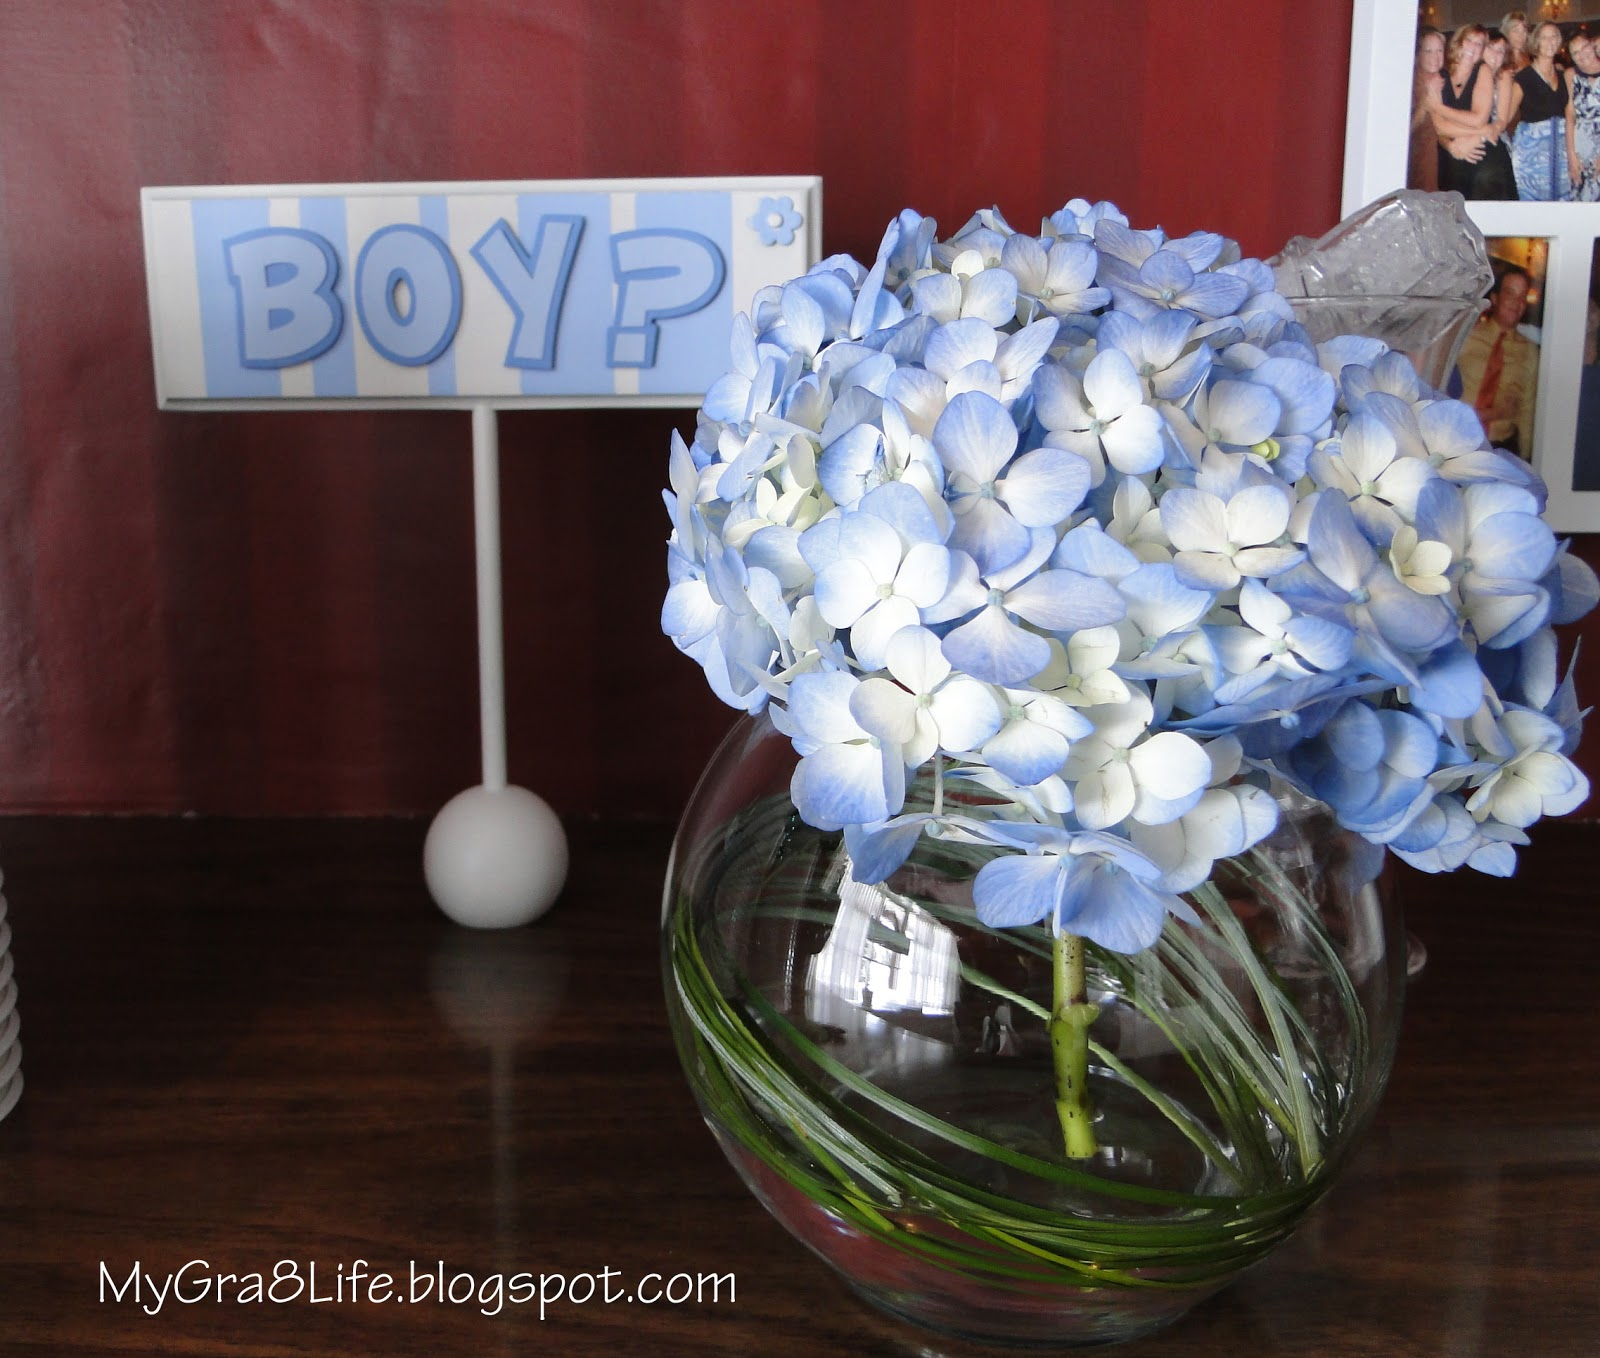 My Gra 8 Life: PINK and BLUE Baby Shower